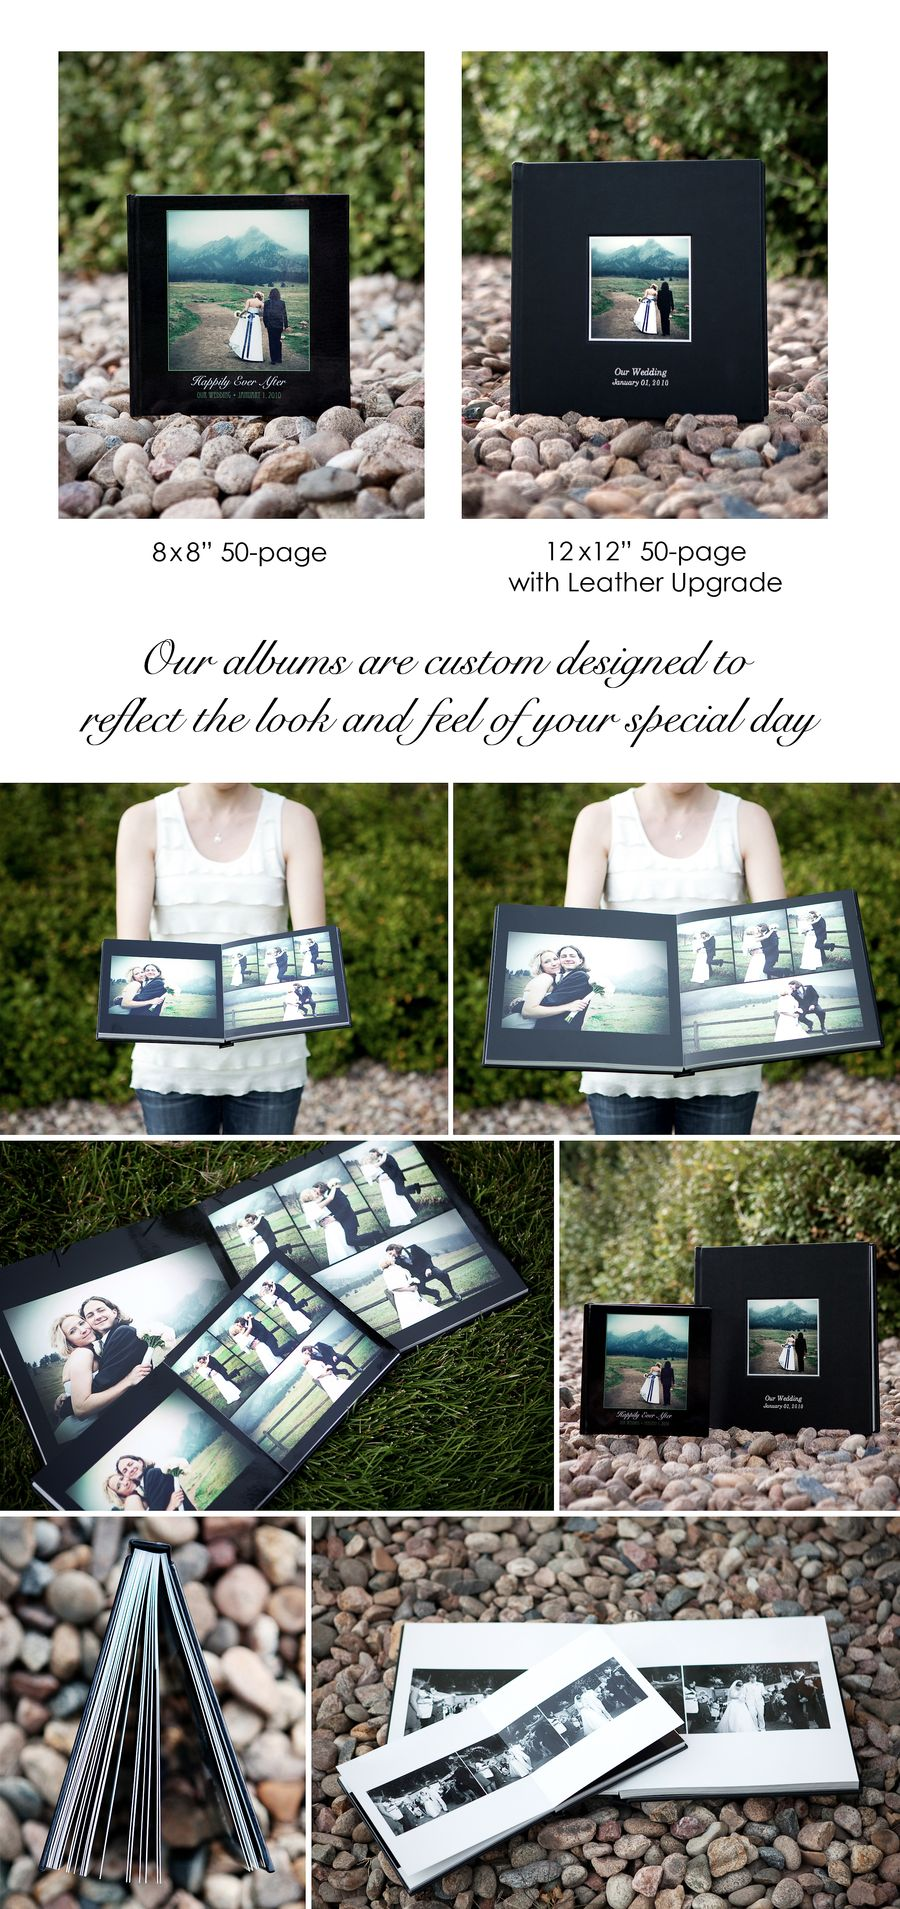 CustomDesignedAlbums